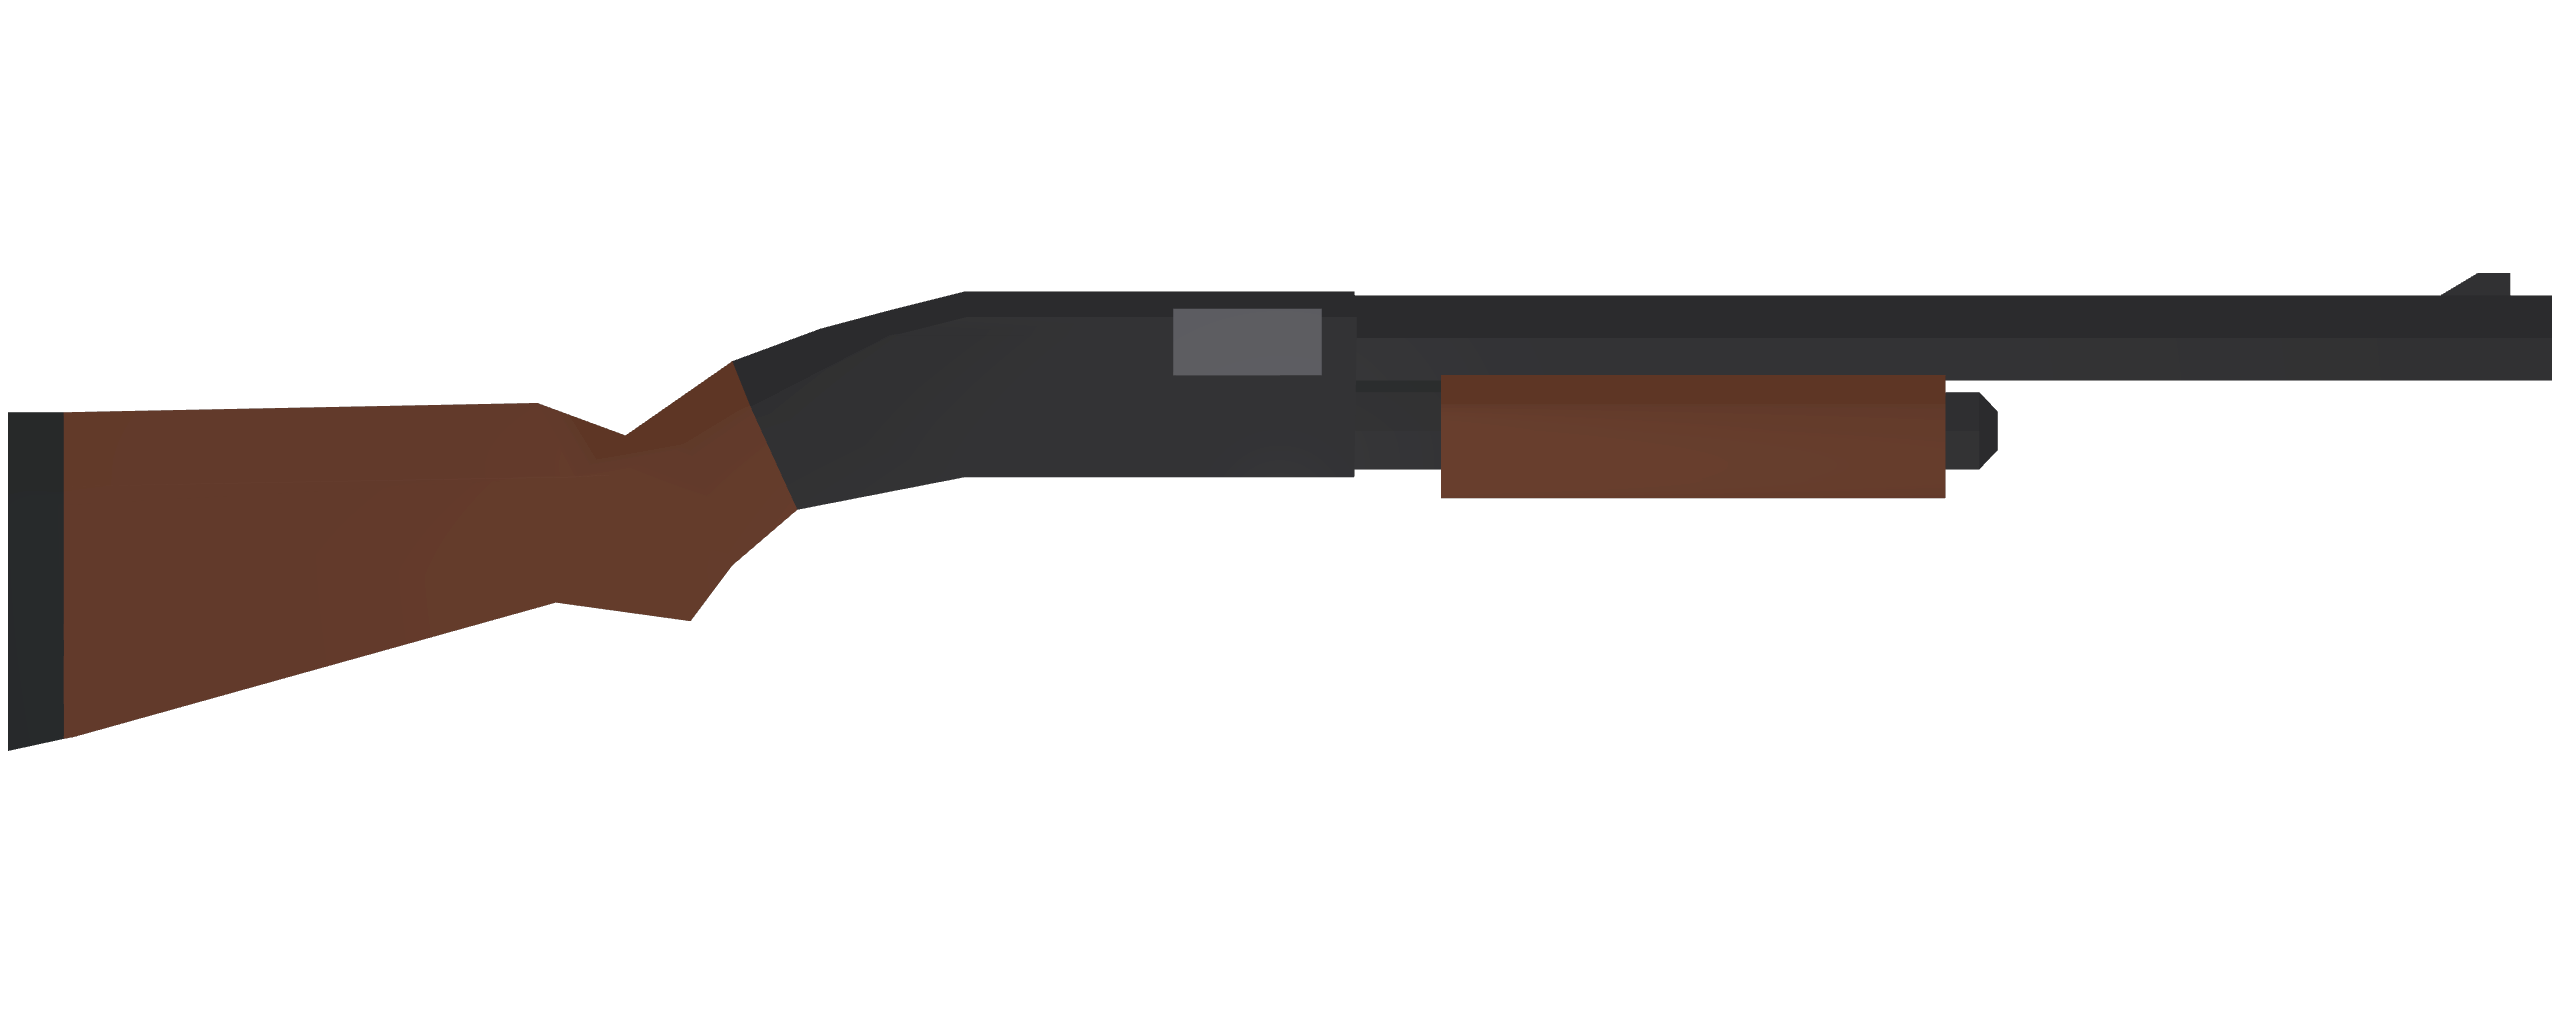 Unturned - All Weapons ID's for Uncreated Warfare Mods - Neutral Weapons - BF0412D